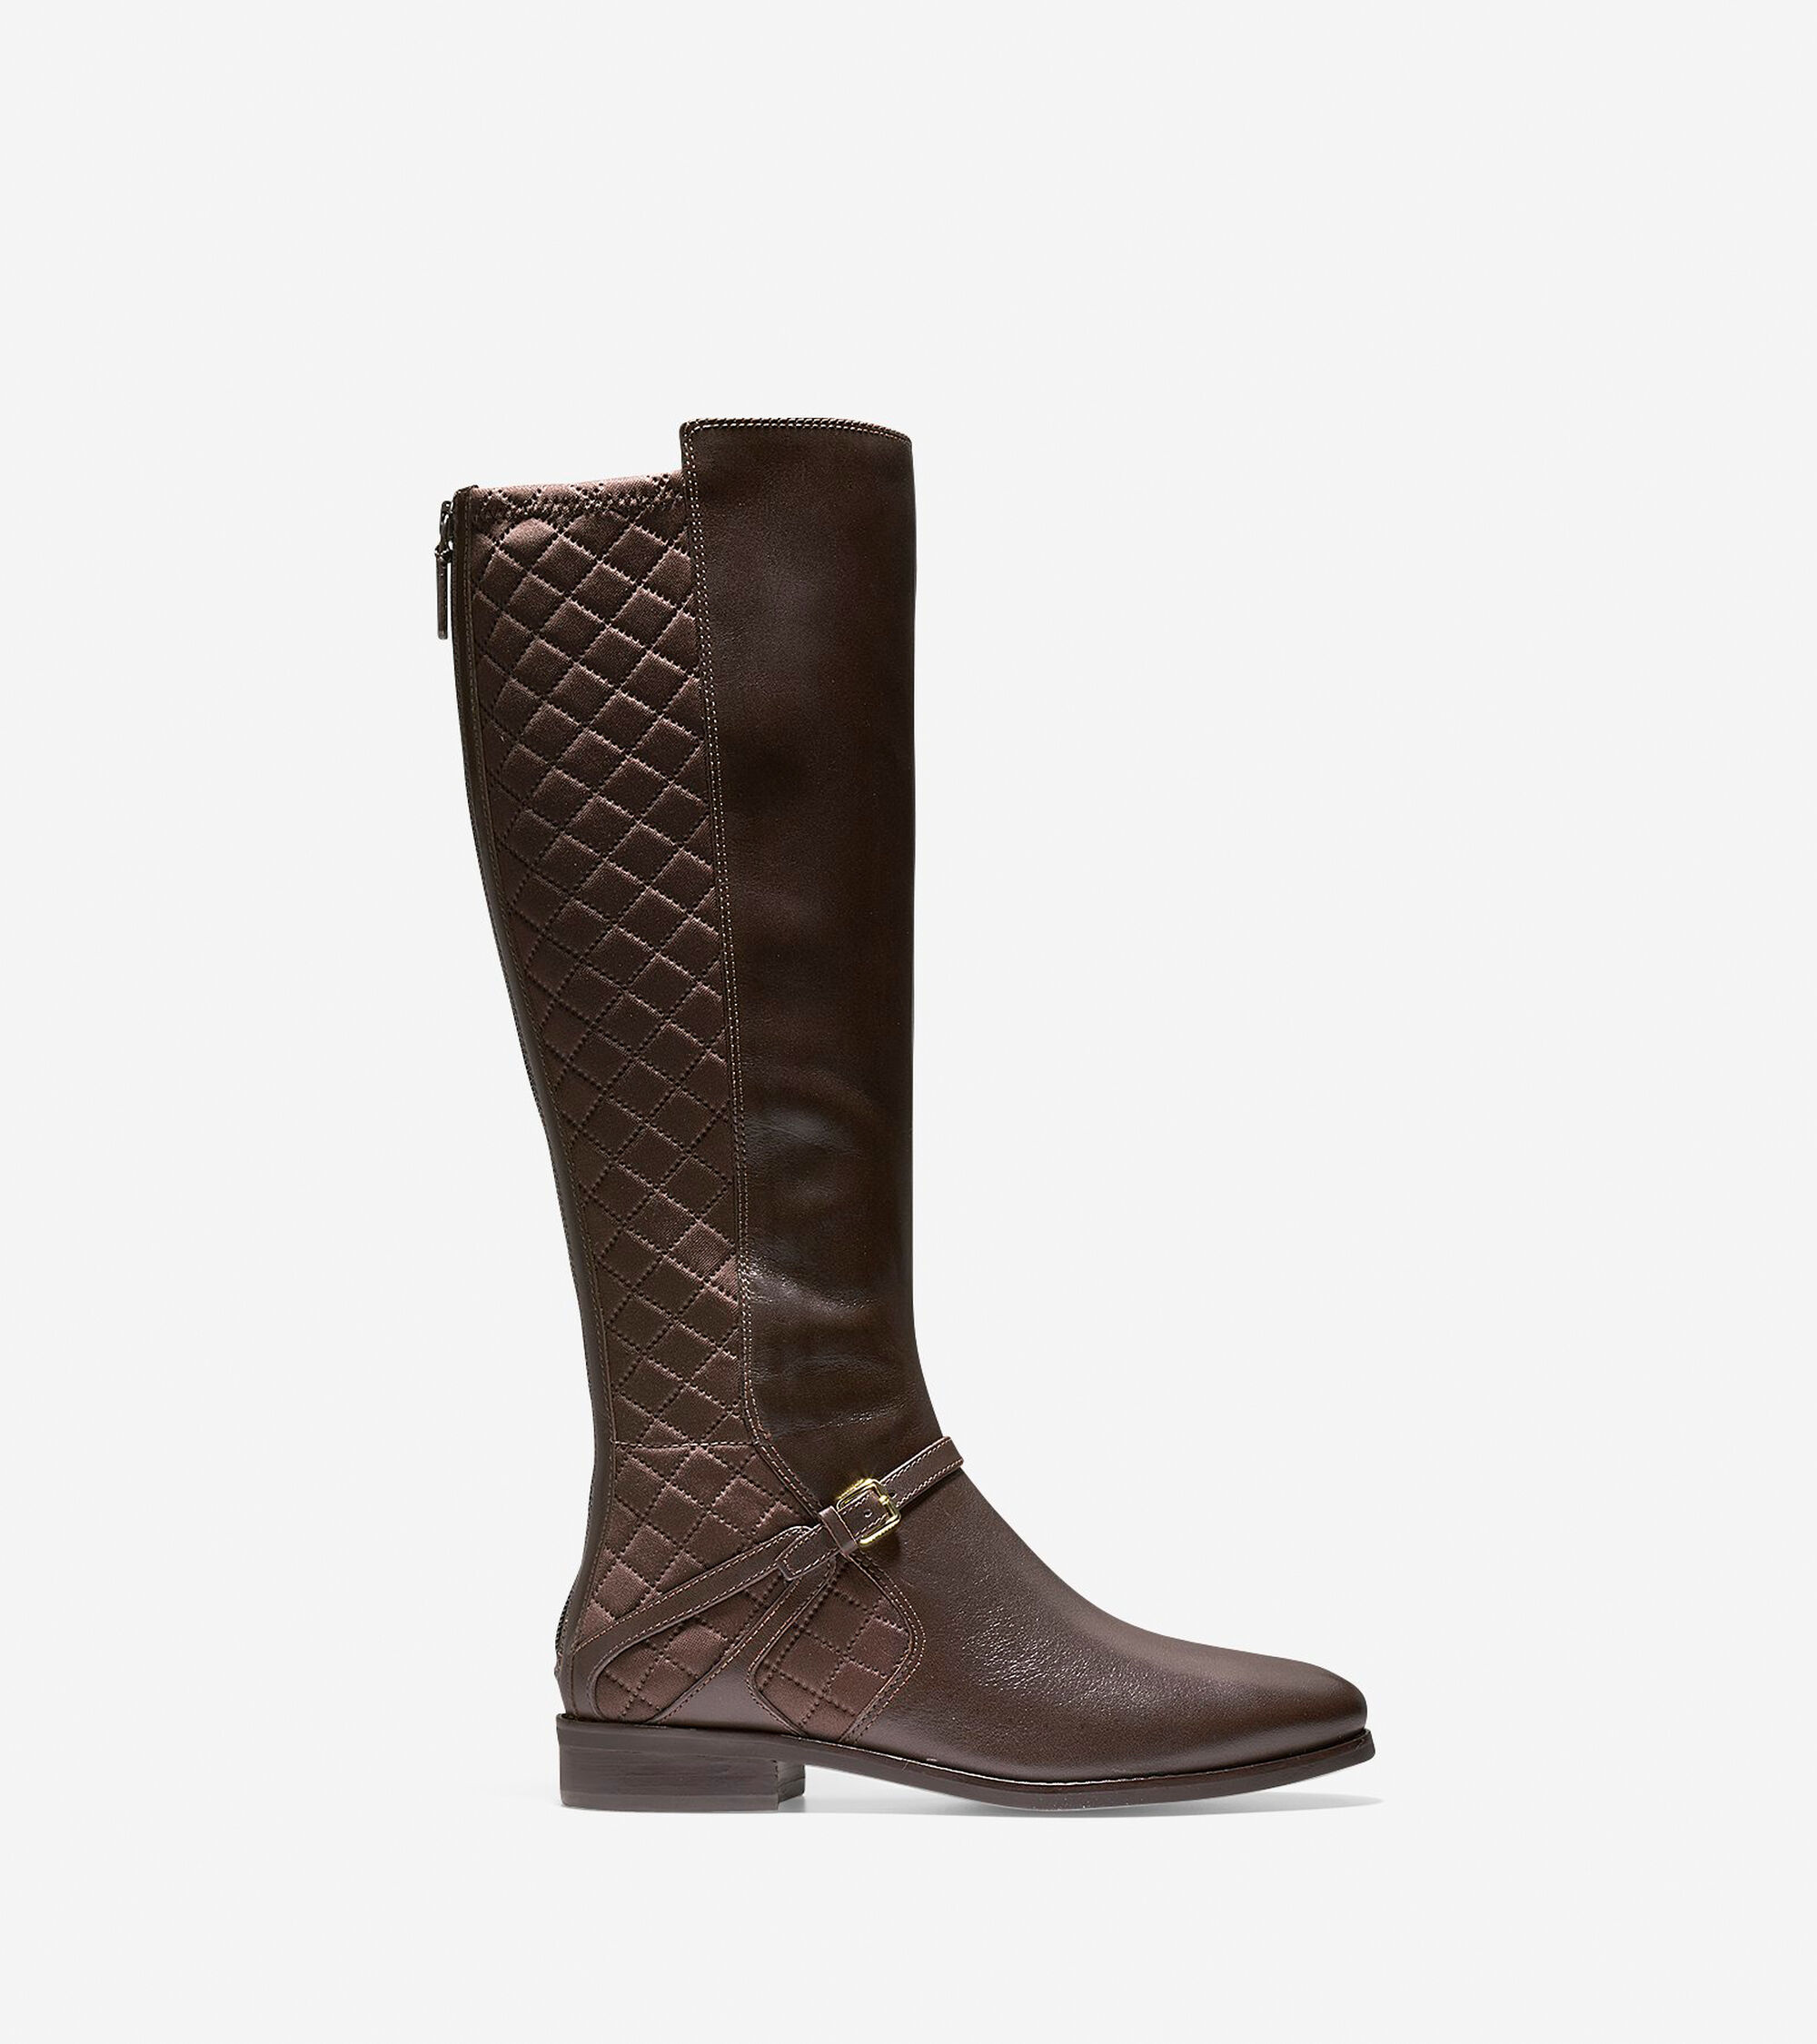 Cole Haan Imogene Boots